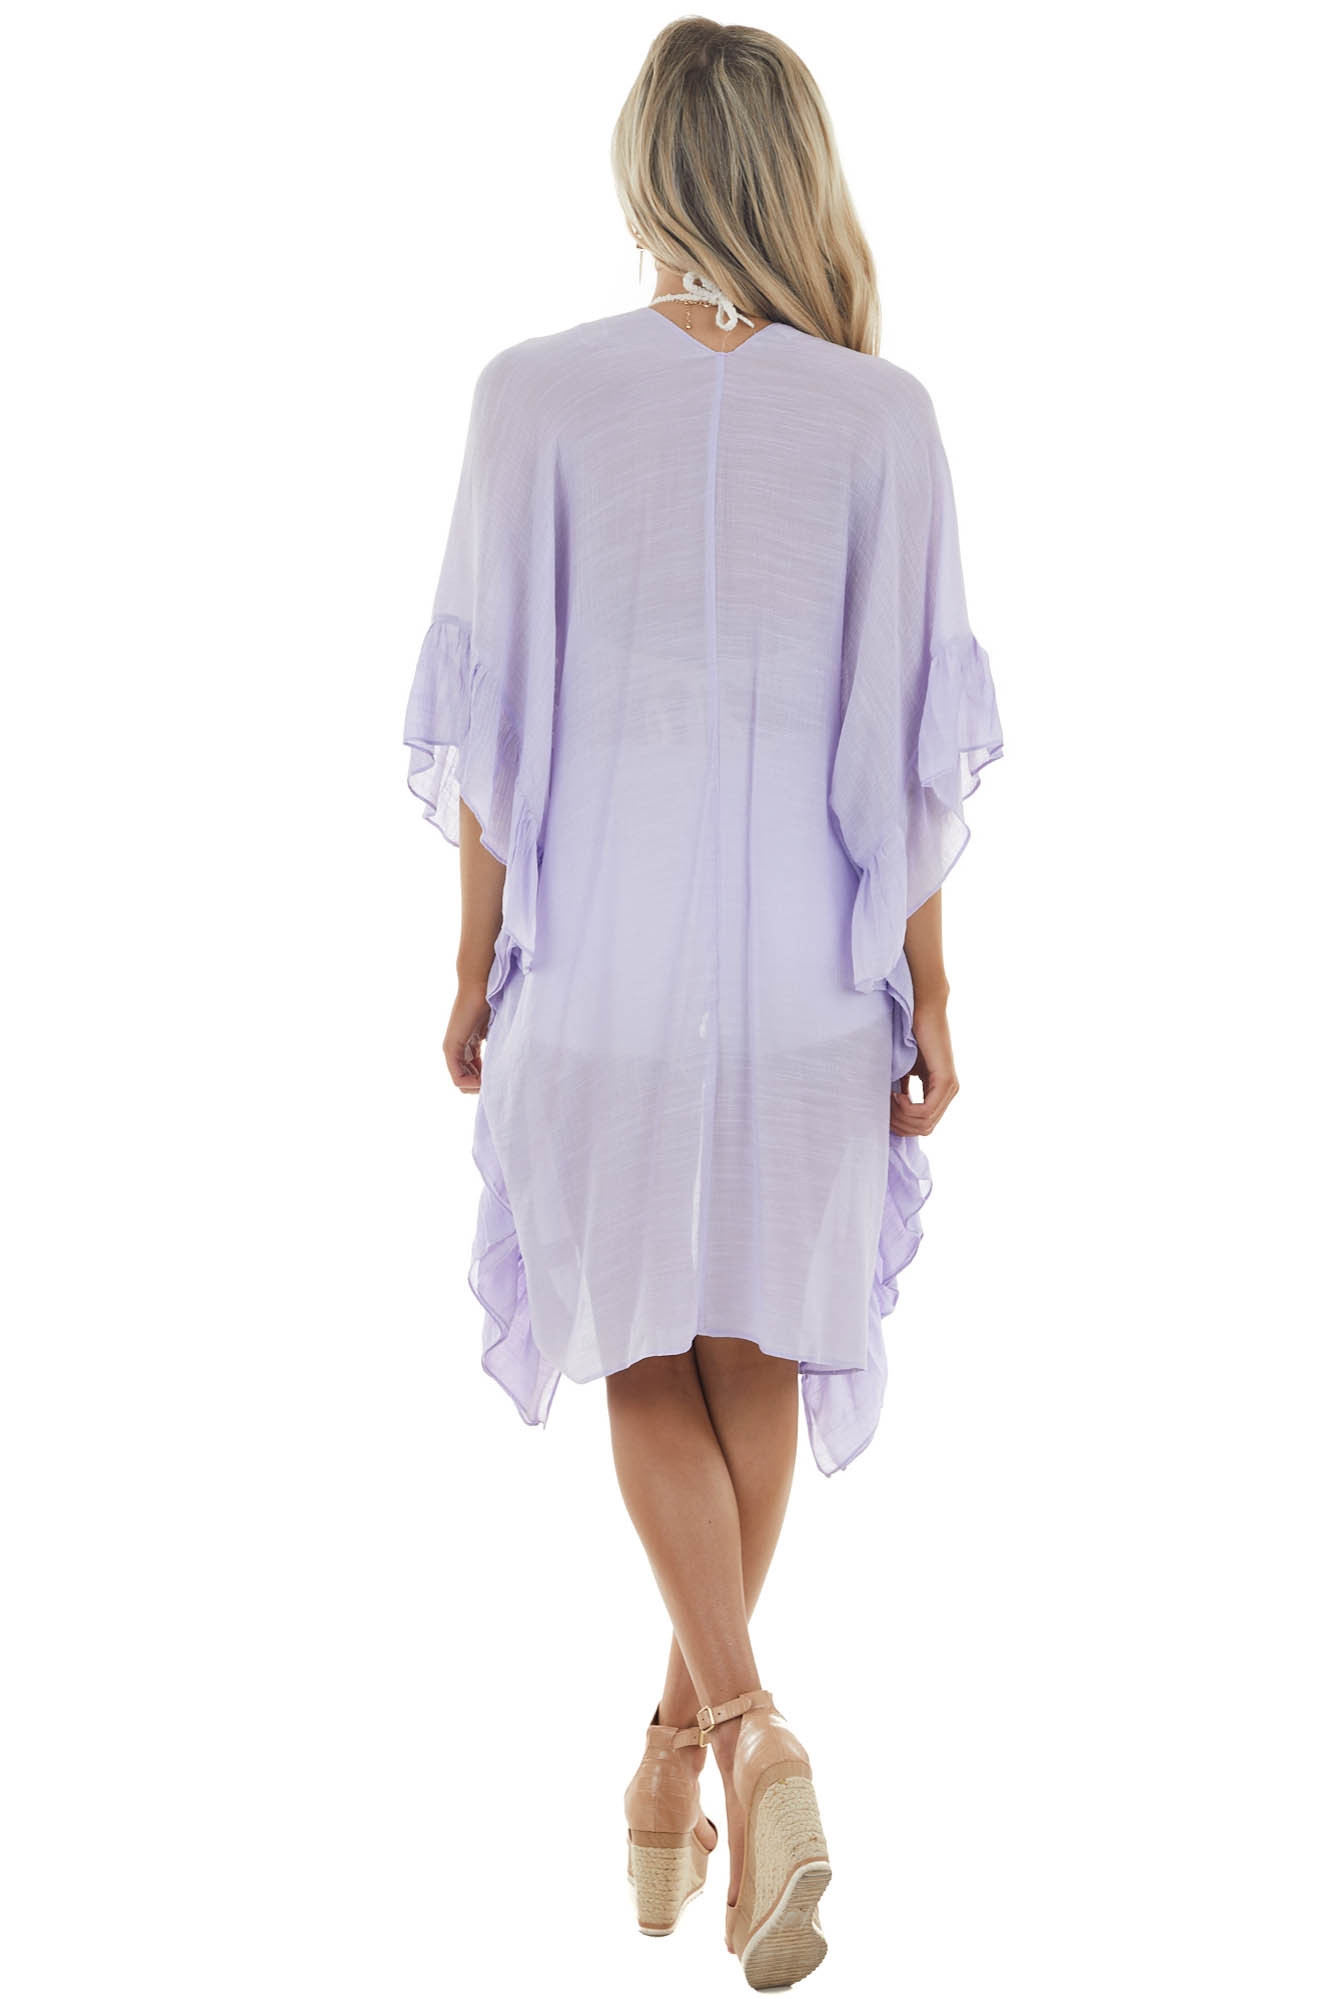 Lavender Half Sleeve Open Front Kimono with Ruffle Details